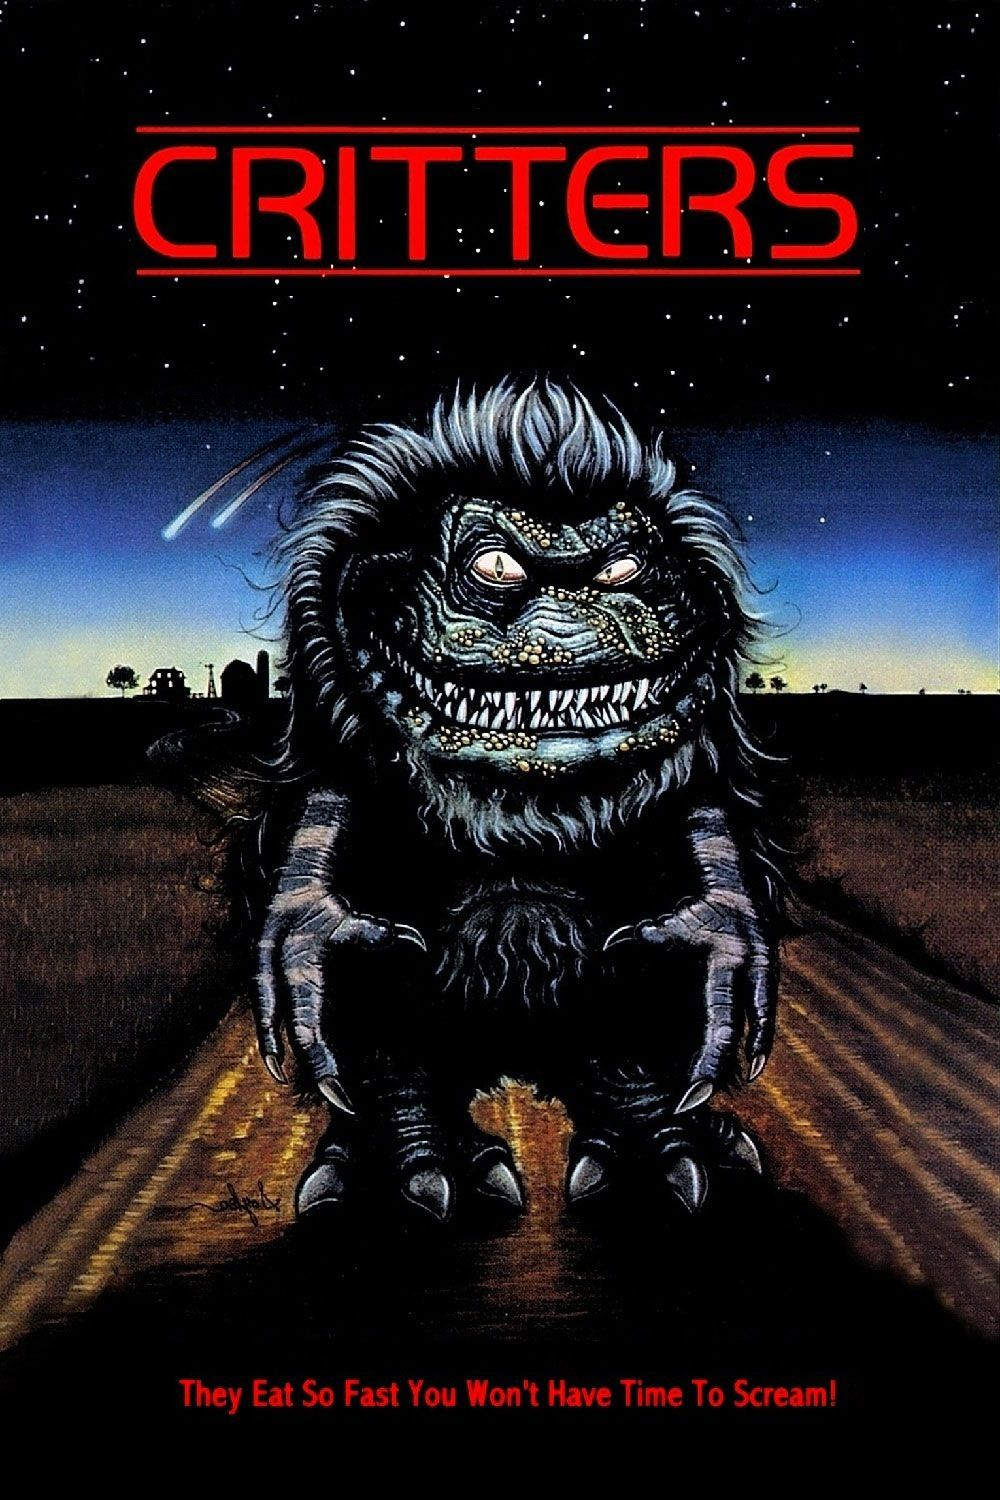 warner bros digital division developing critters and